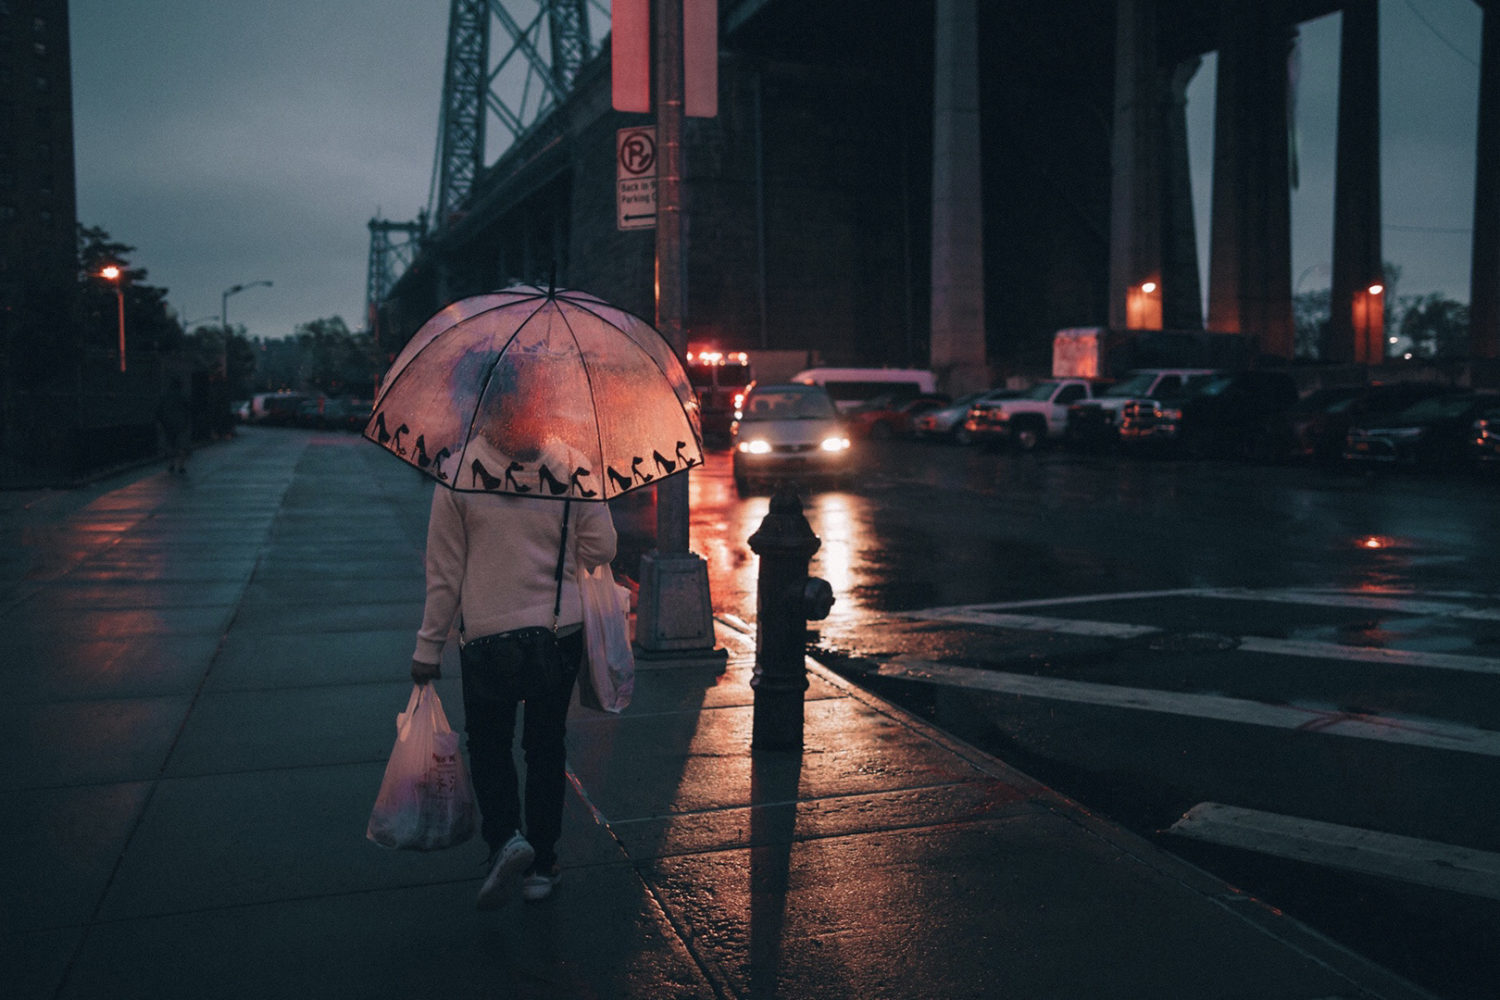 Eight tips for improving your street photography at night